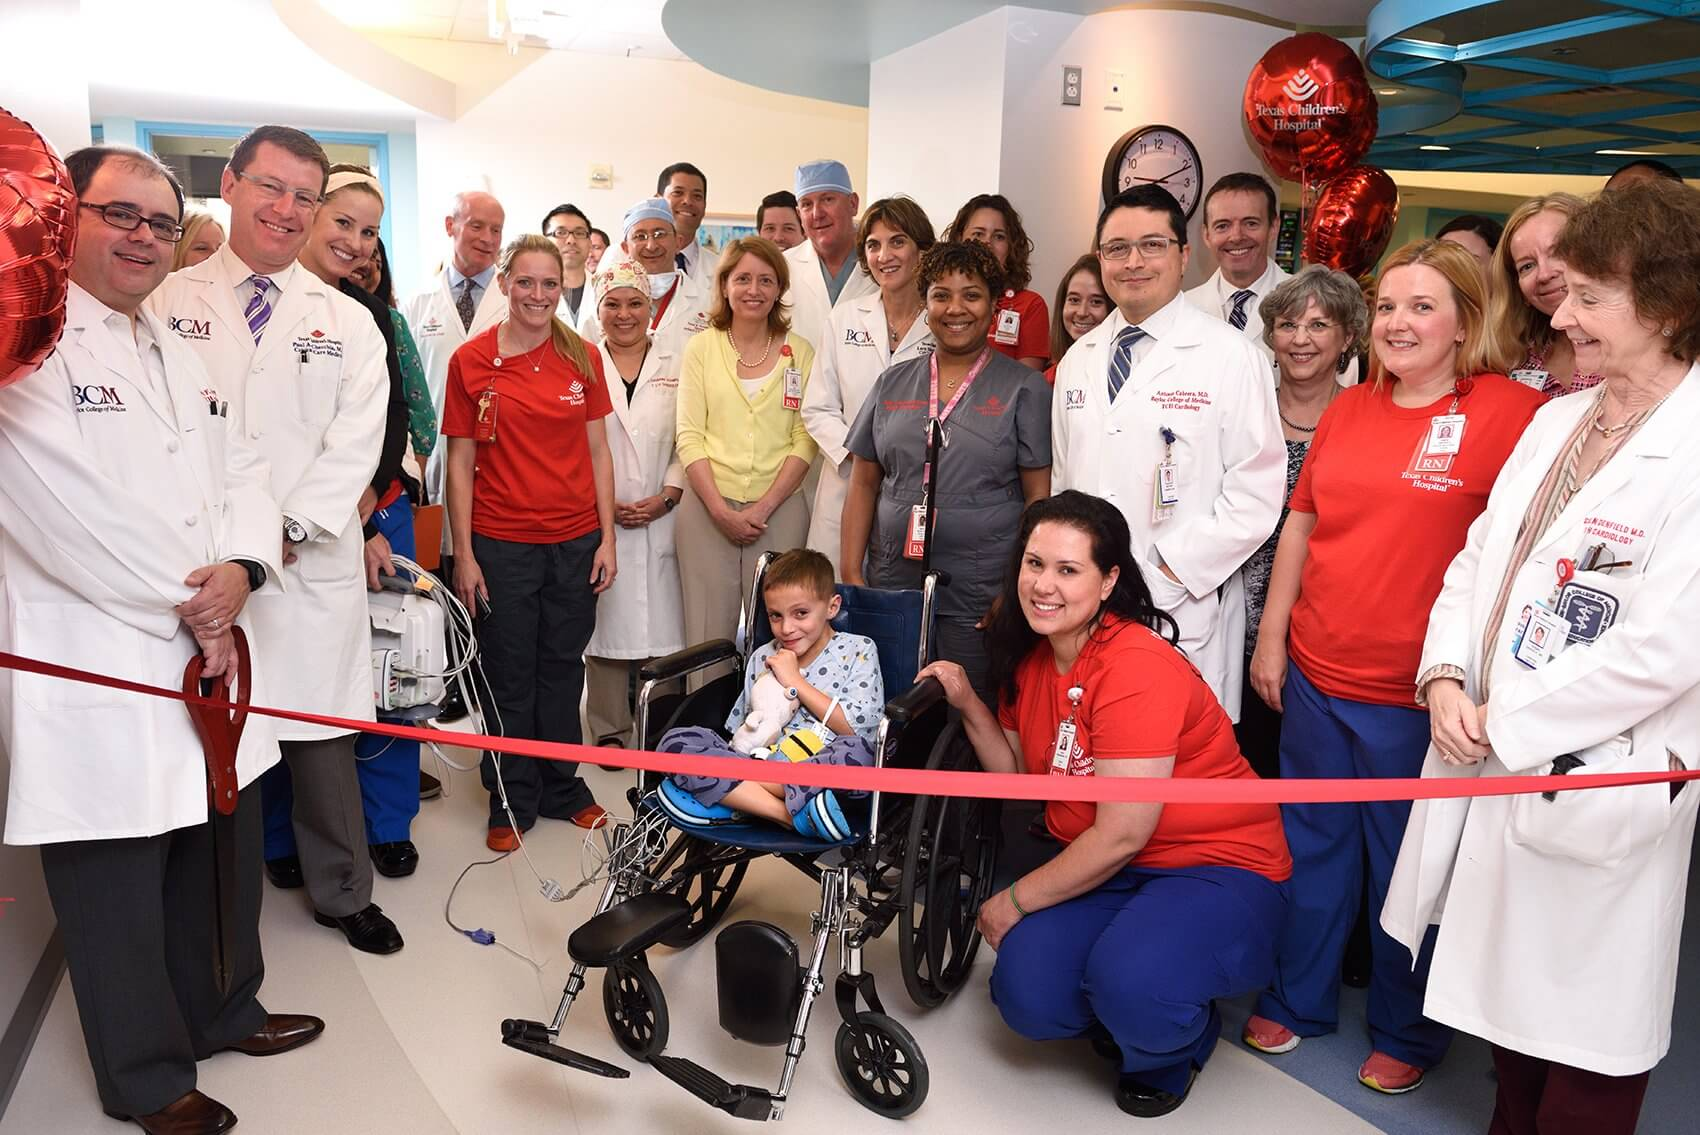 Patient Marcelo Perez and hospital leaders pose in front of the new Texas Children's Heart Failure Intensive Care Unit. (Credit: Paul Vincent Kuntz/Texas Children's Hospital)